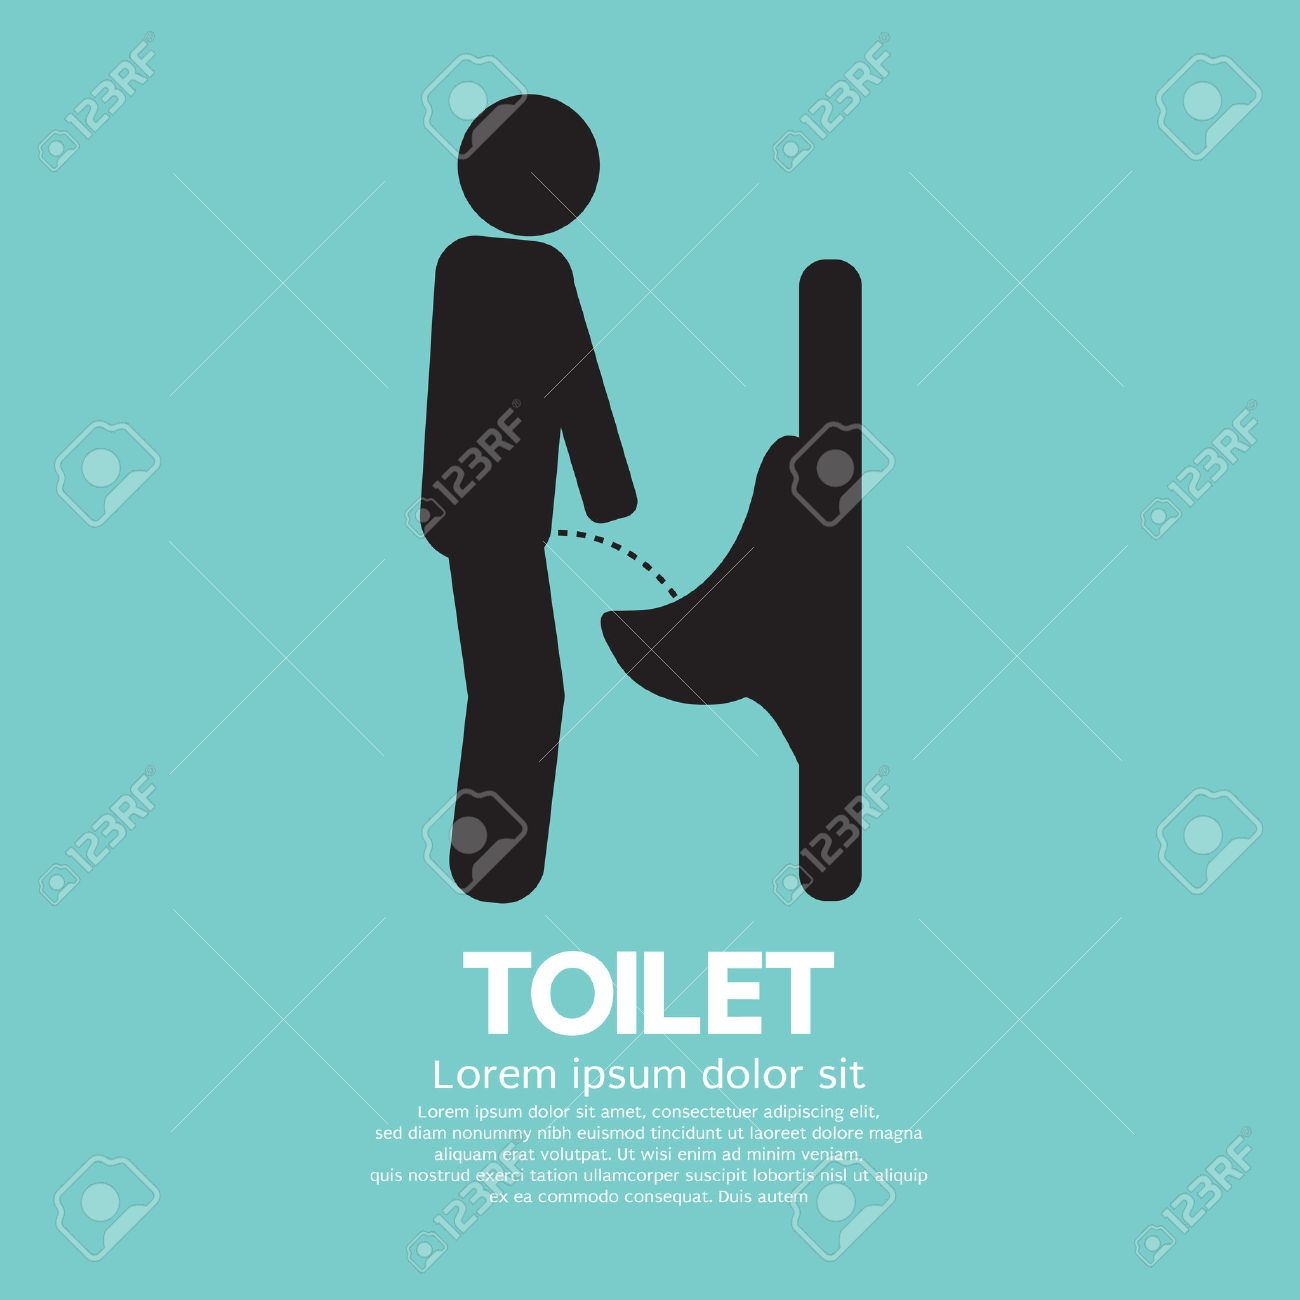 Men toilet sign vector illustration royalty free cliparts vectors men toilet sign vector illustration stock vector 29025471 biocorpaavc Choice Image